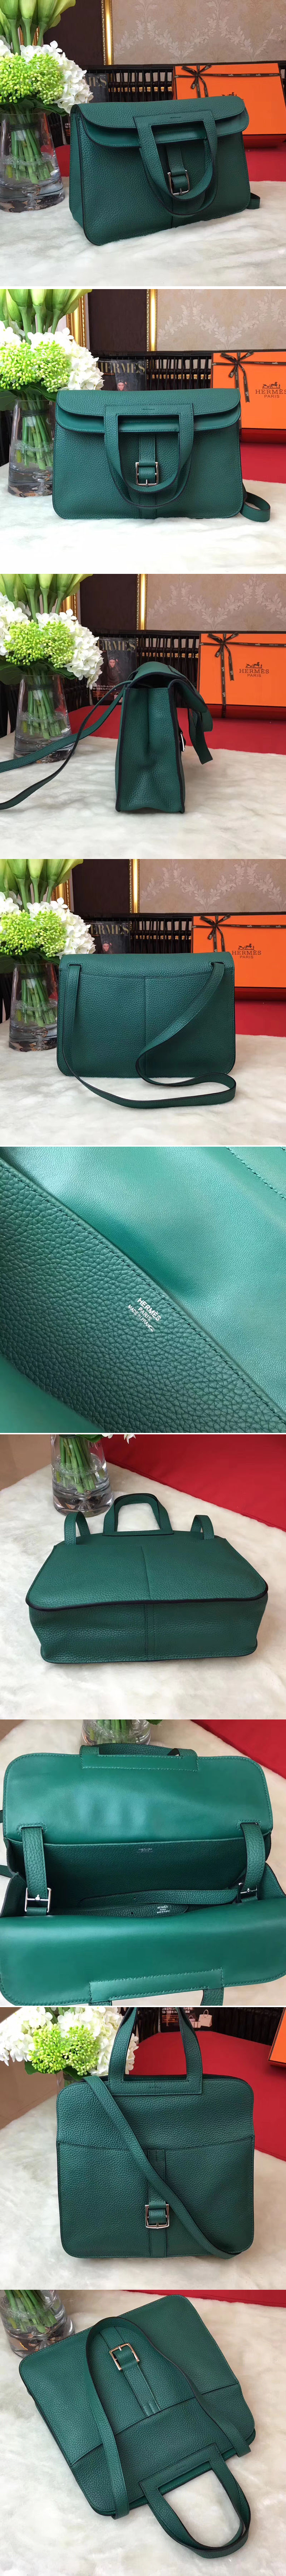 Replica Hermes Halzan 31 Bags Original Taurillon Leather Green